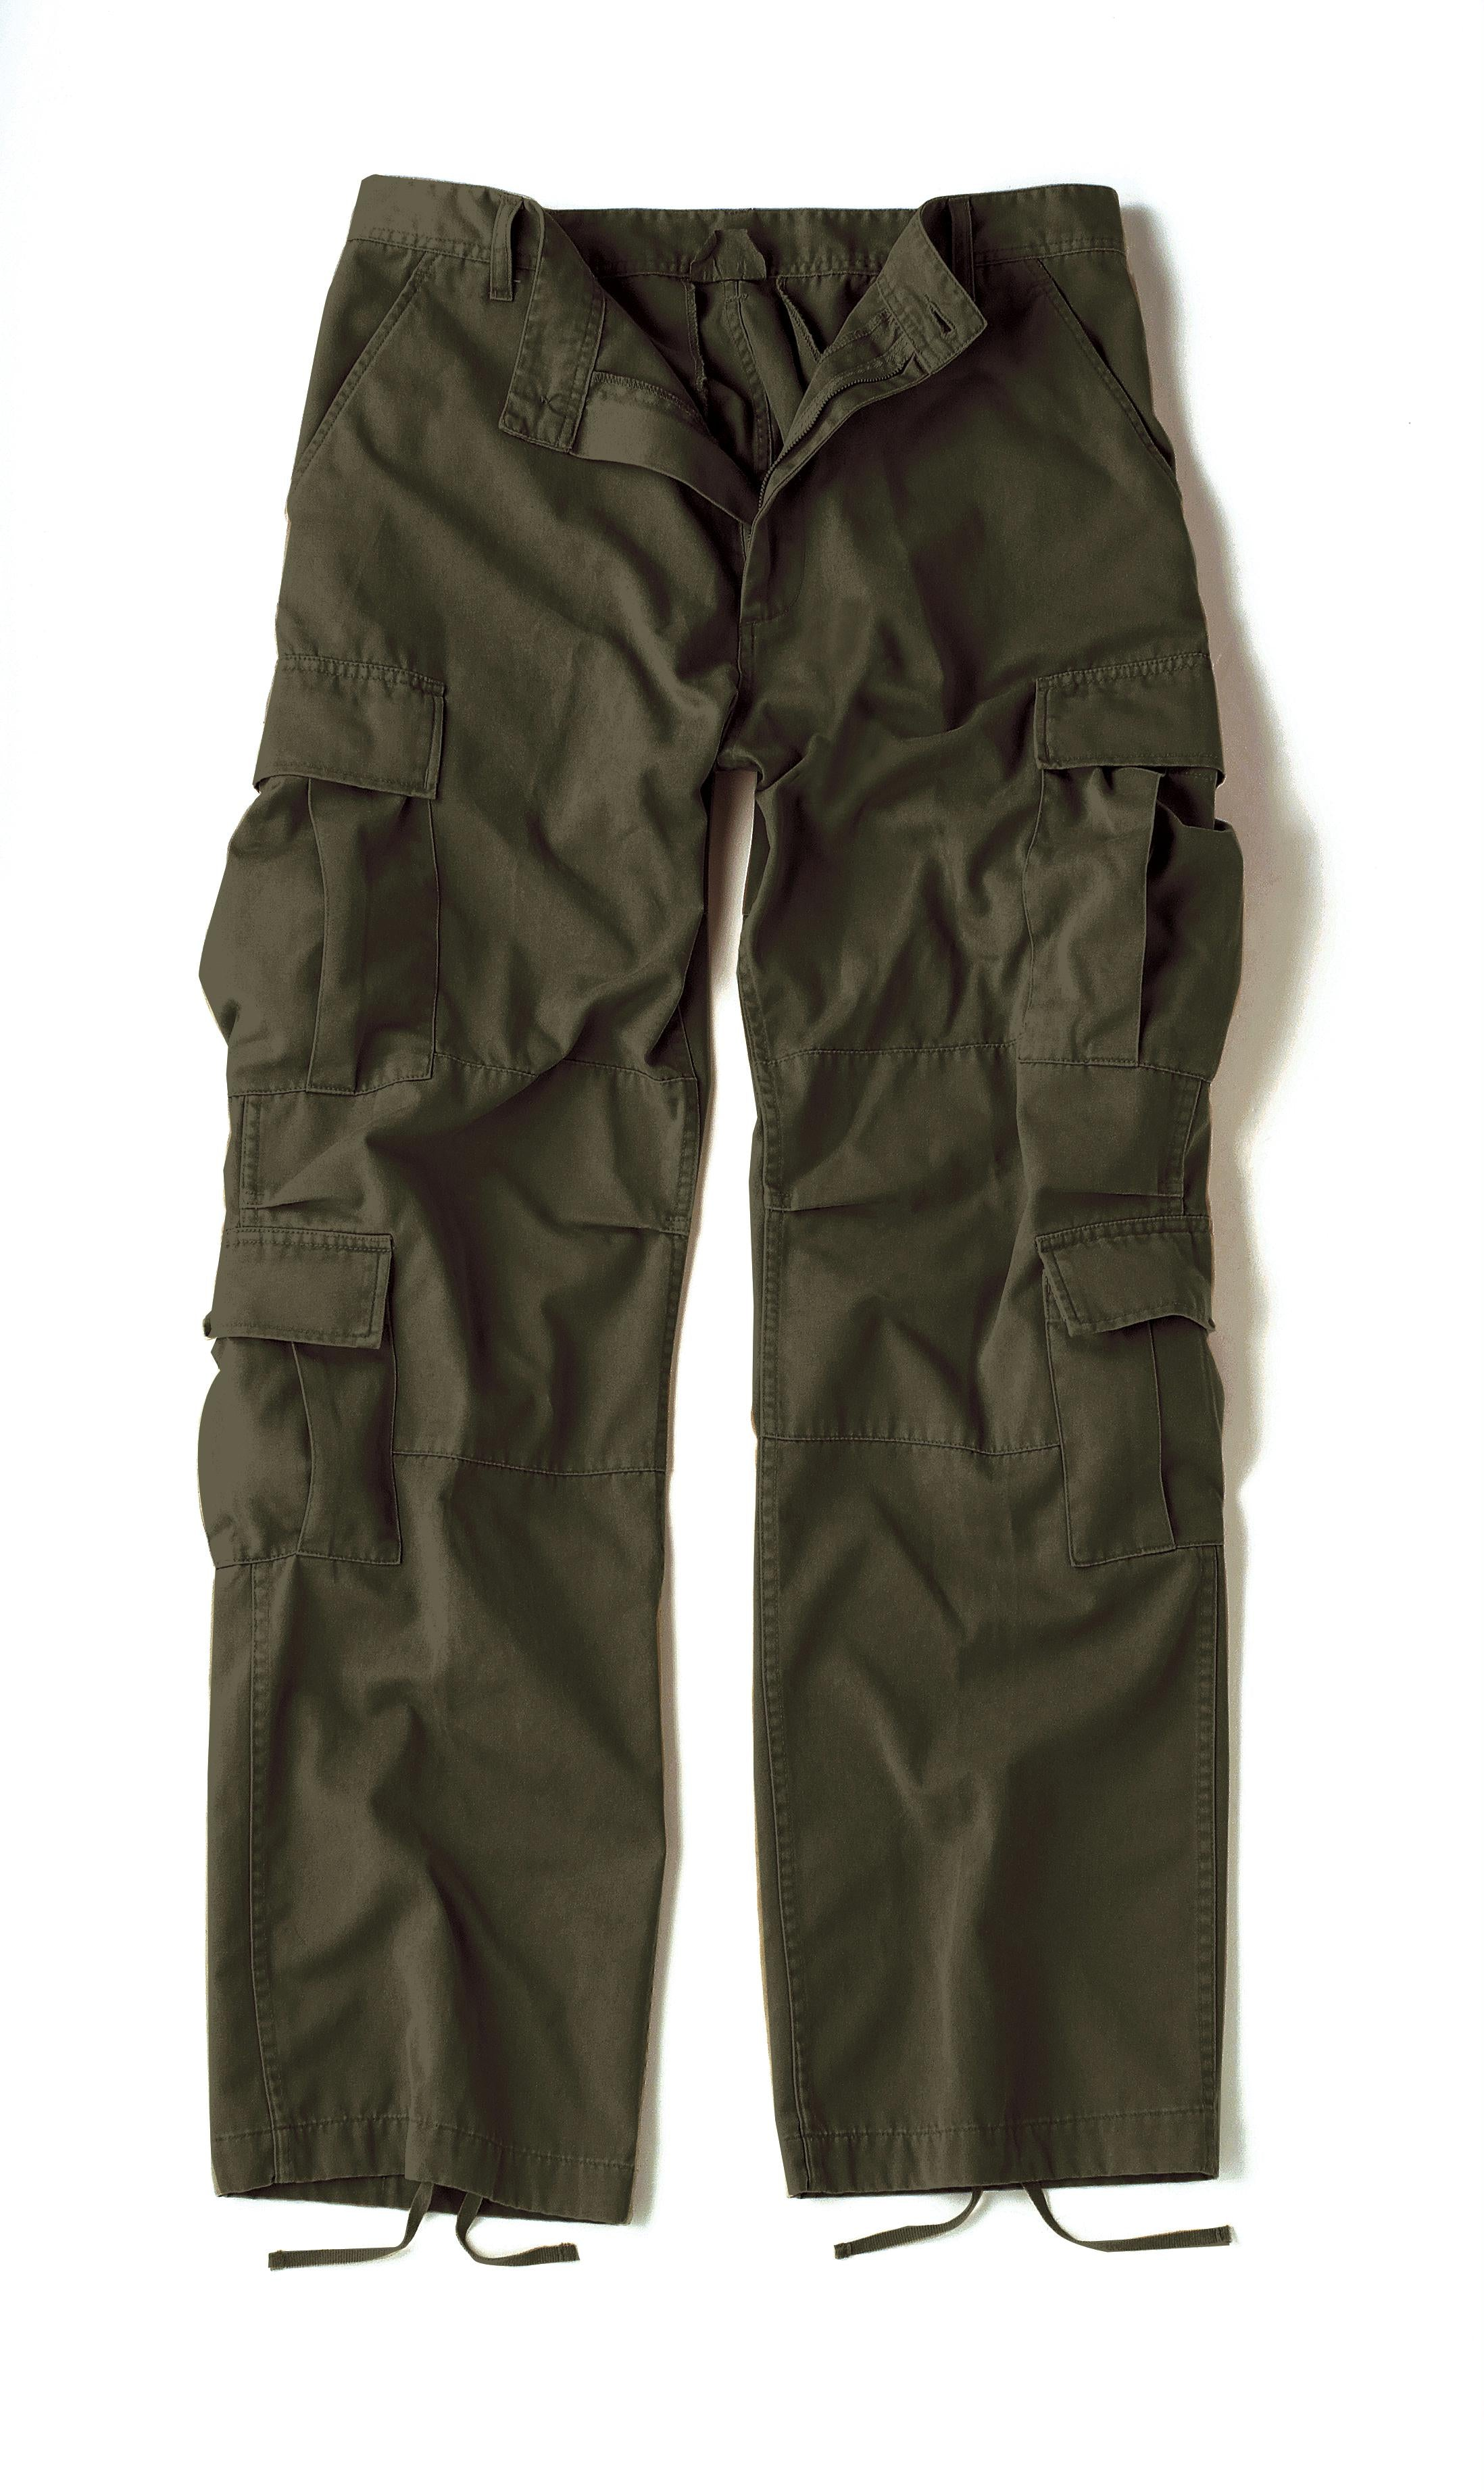 Rothco Vintage Paratrooper Fatigue Pants - Olive Drab / 4XL